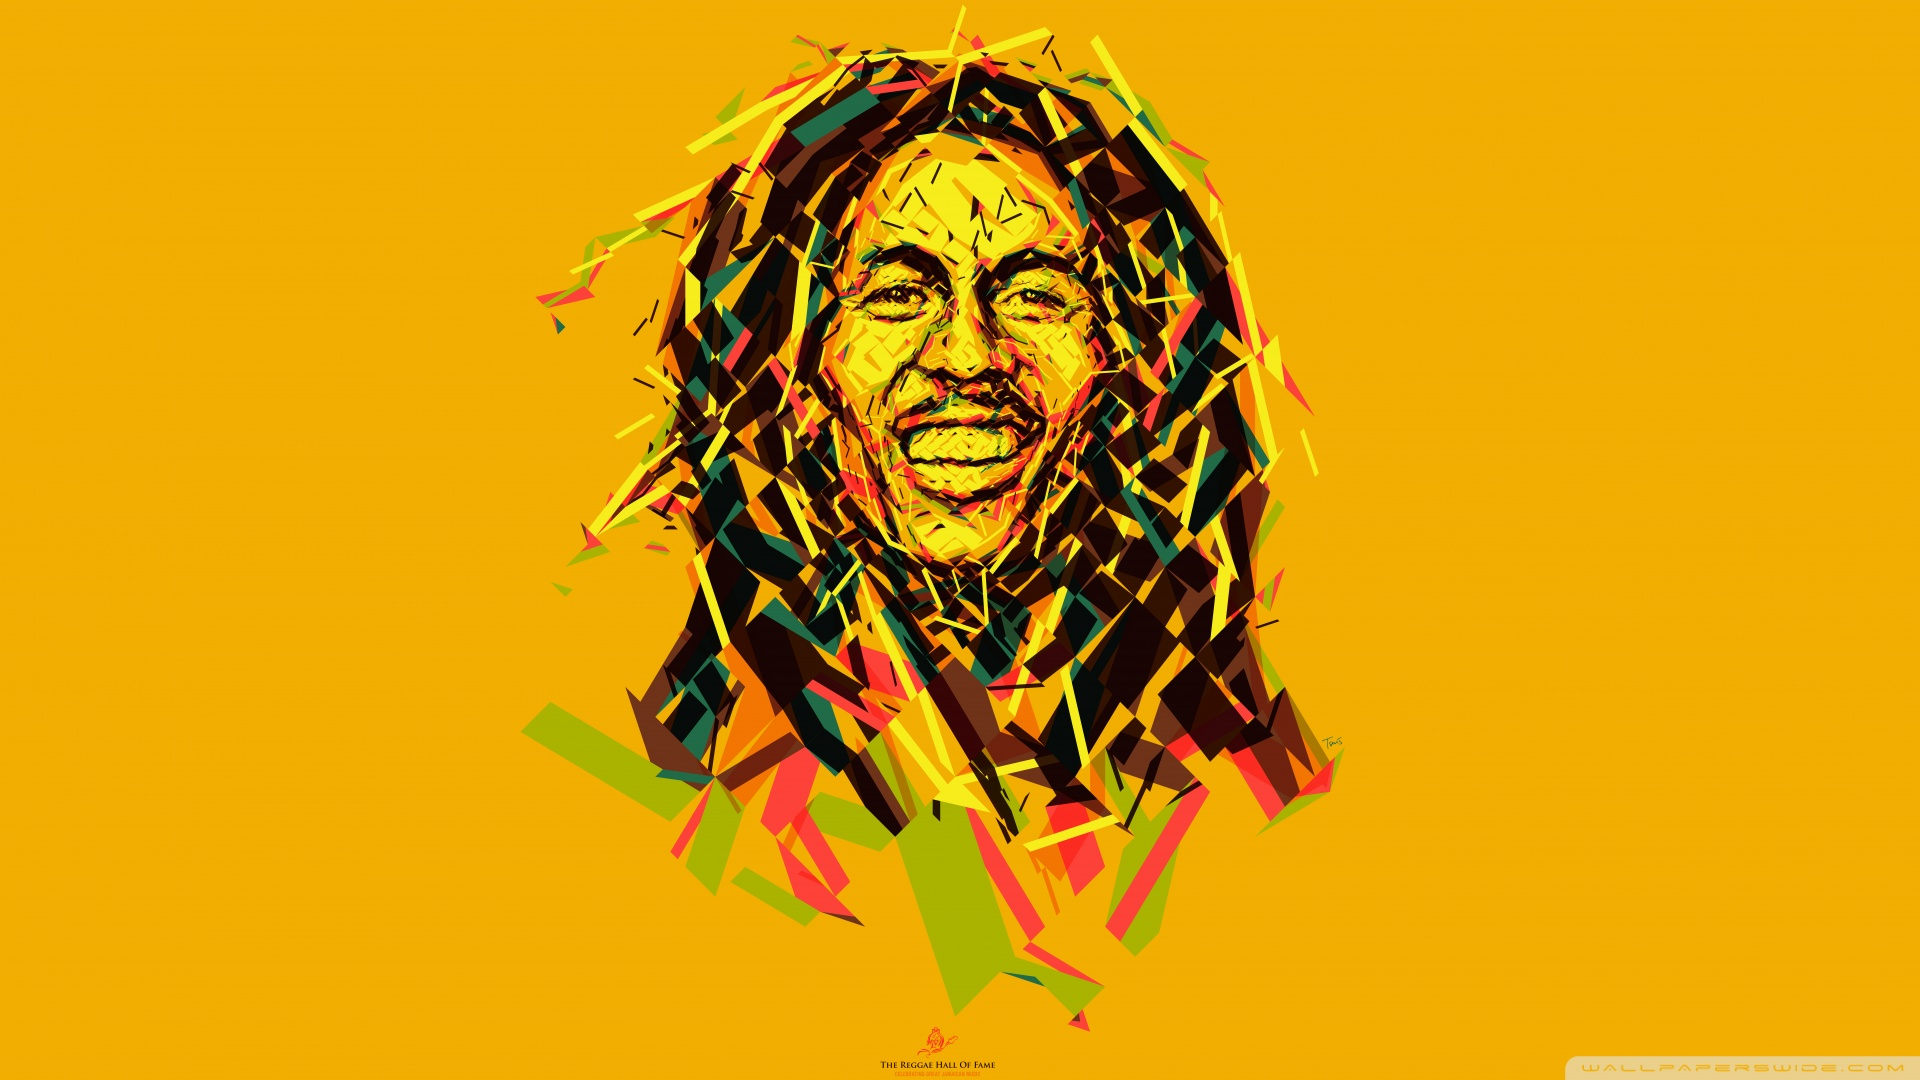 Bob-Marley-Wake-Up-And-Live-1920x1080-Need-iPhone-S-Plus-Background-for-IPhoneS-wallpaper-wp3603625